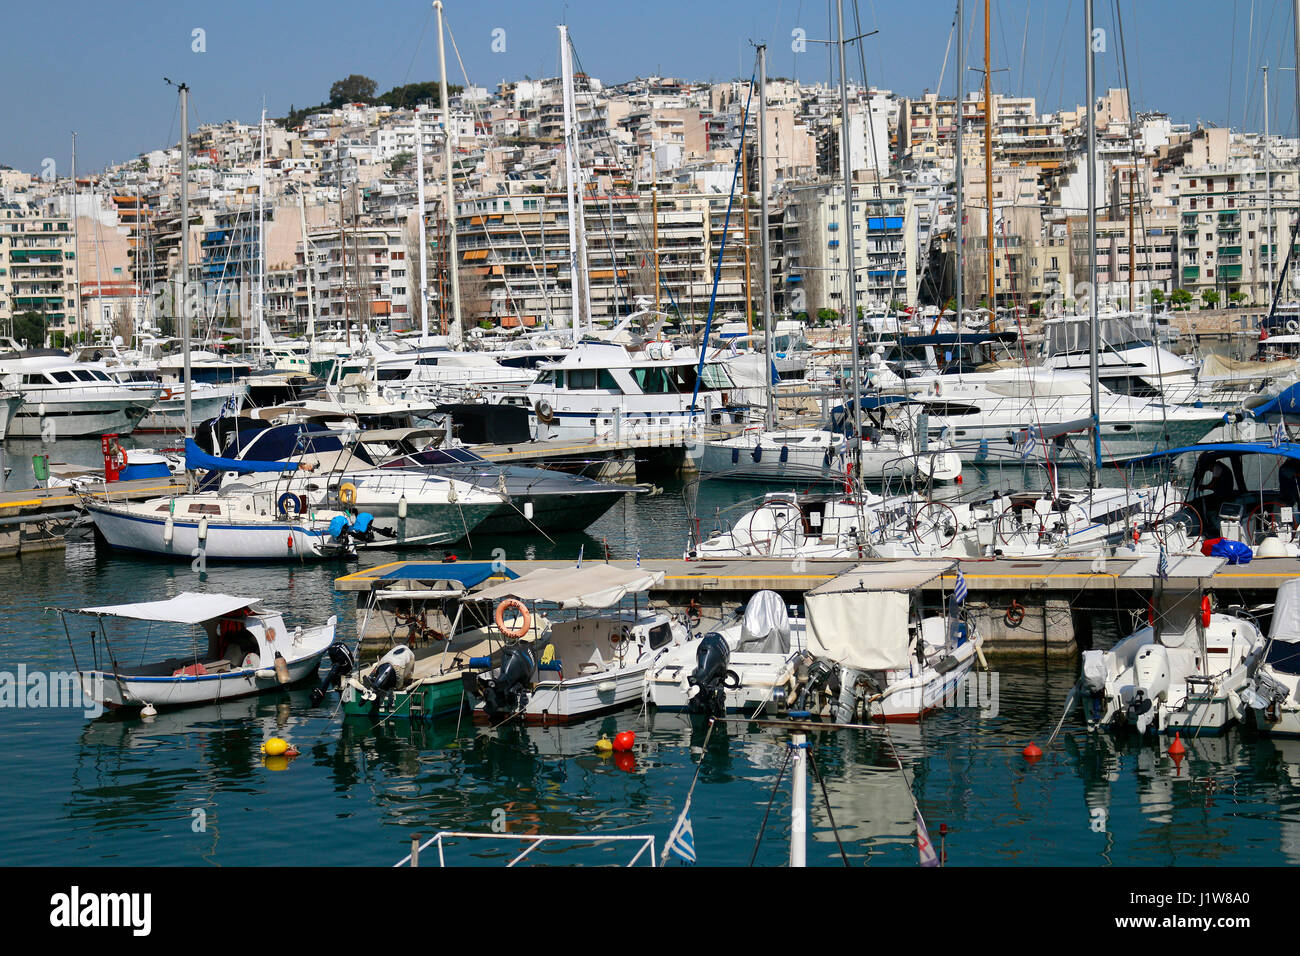 Yachthafen, Piraeus, Griechenland. Stock Photo